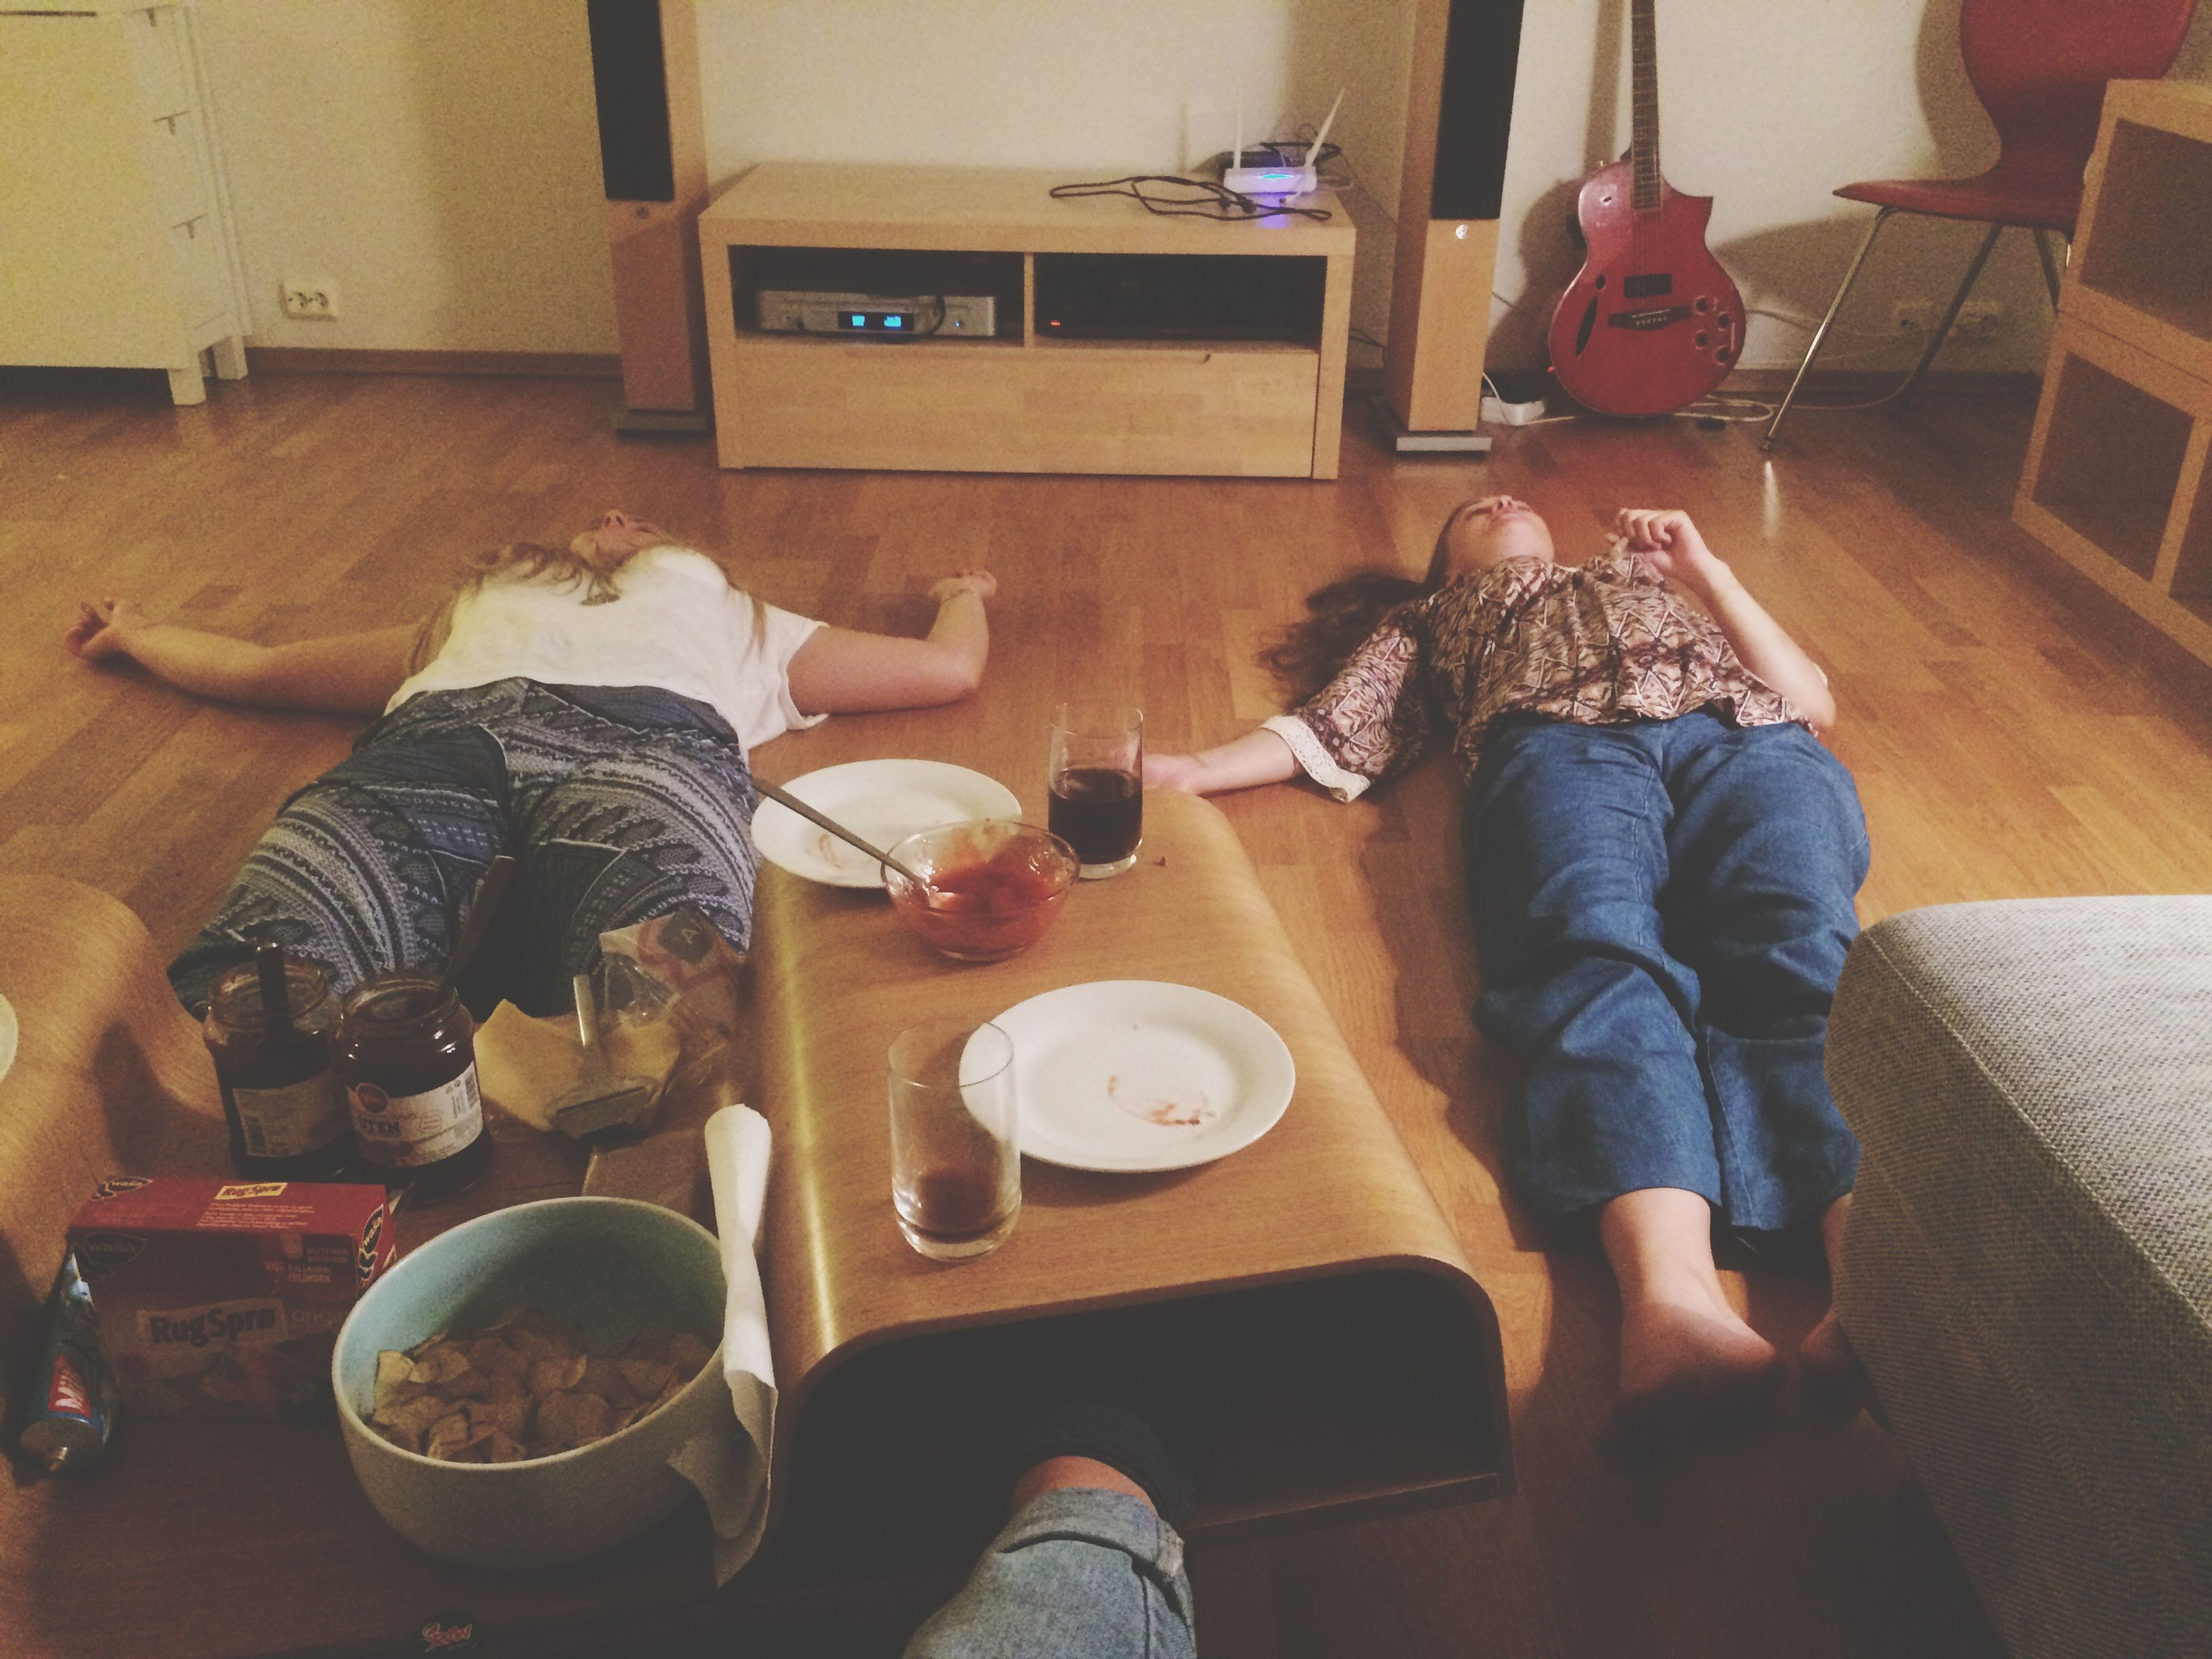 indoors, table, food and drink, lifestyles, home interior, sitting, leisure activity, casual clothing, food, high angle view, holding, domestic life, chair, coffee cup, men, wood - material, drink, relaxation